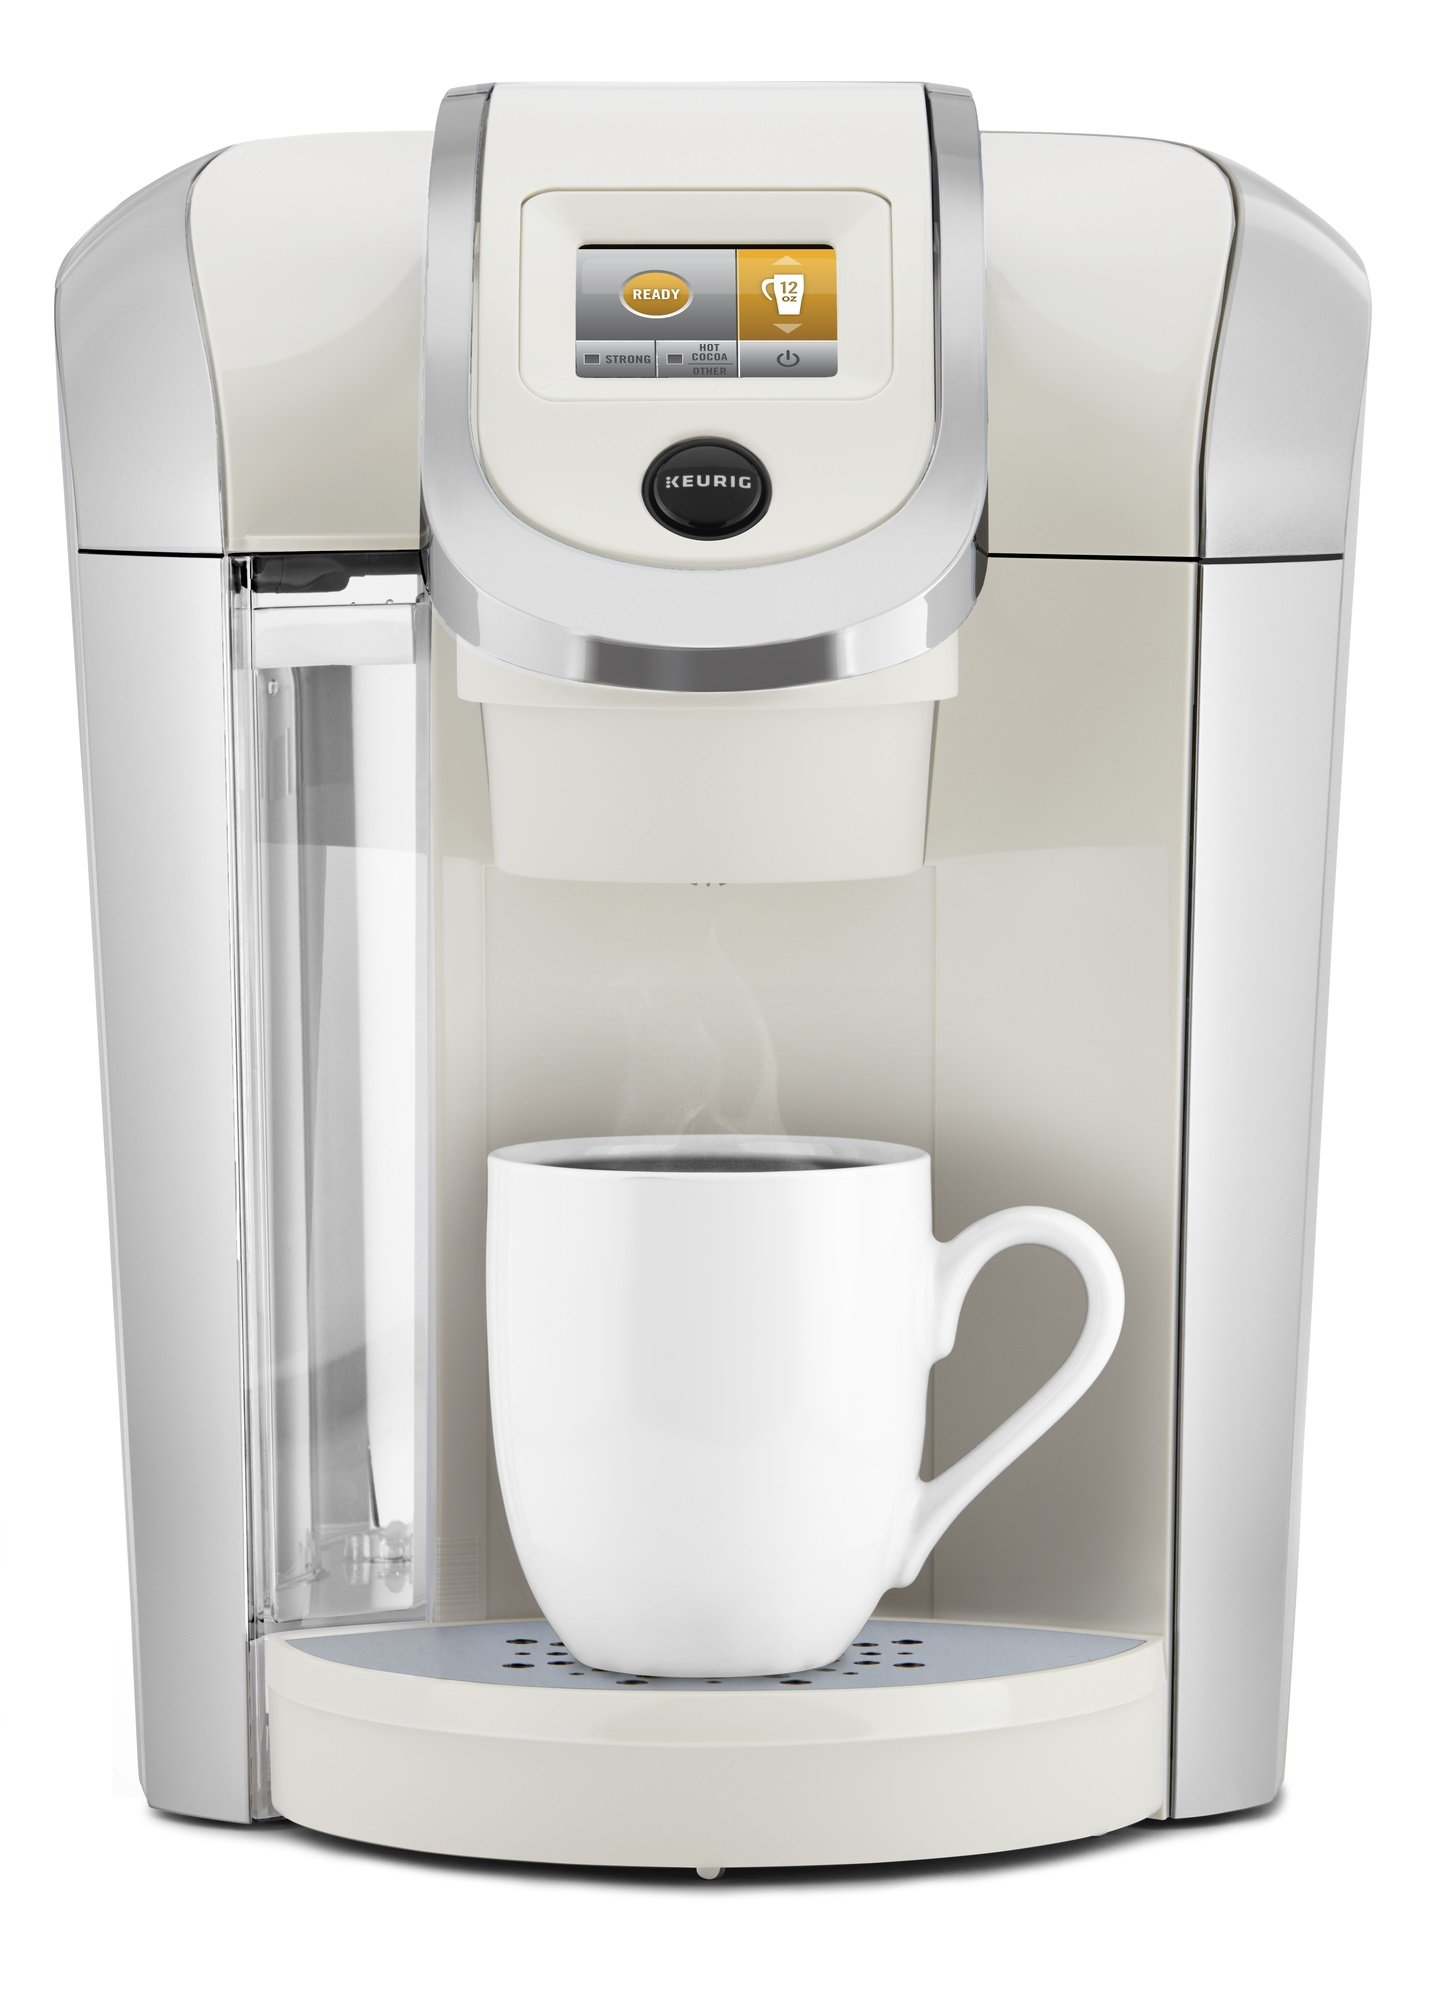 Keurig K475 Single Serve Programmable K- Cup Pod Coffee Maker with 12 oz brew size and temperature control, Sandy Pearl